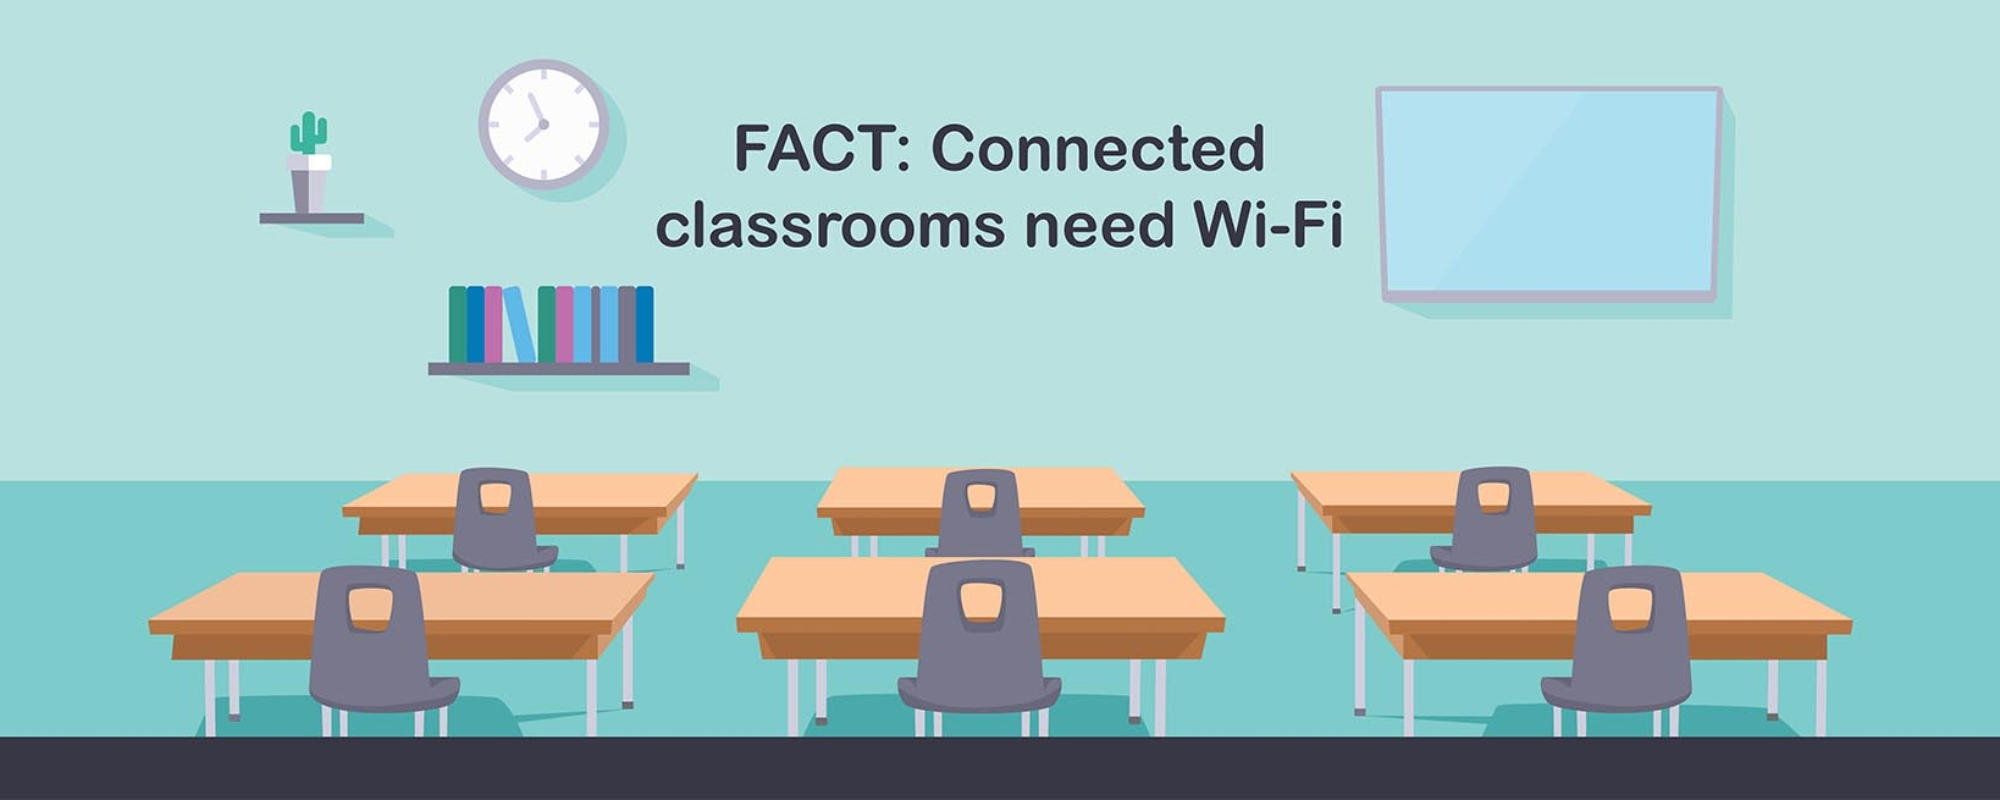 Connected classrooms need Wi-Fi